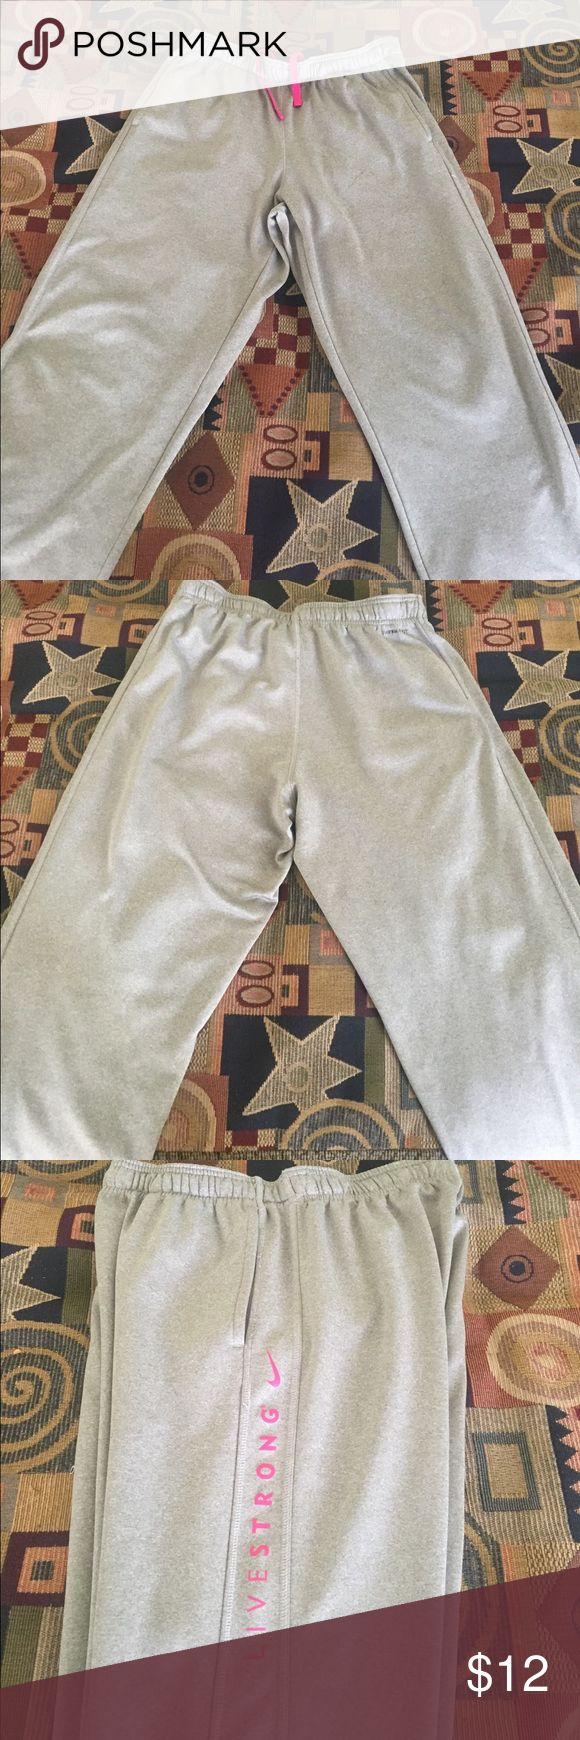 Nike Livestrong Therma Fit Joggers Silver Nike Livestrong Therma Fit joggers. Size Large. Good Condition. Open to Offers Nike Pants Sweatpants & Joggers